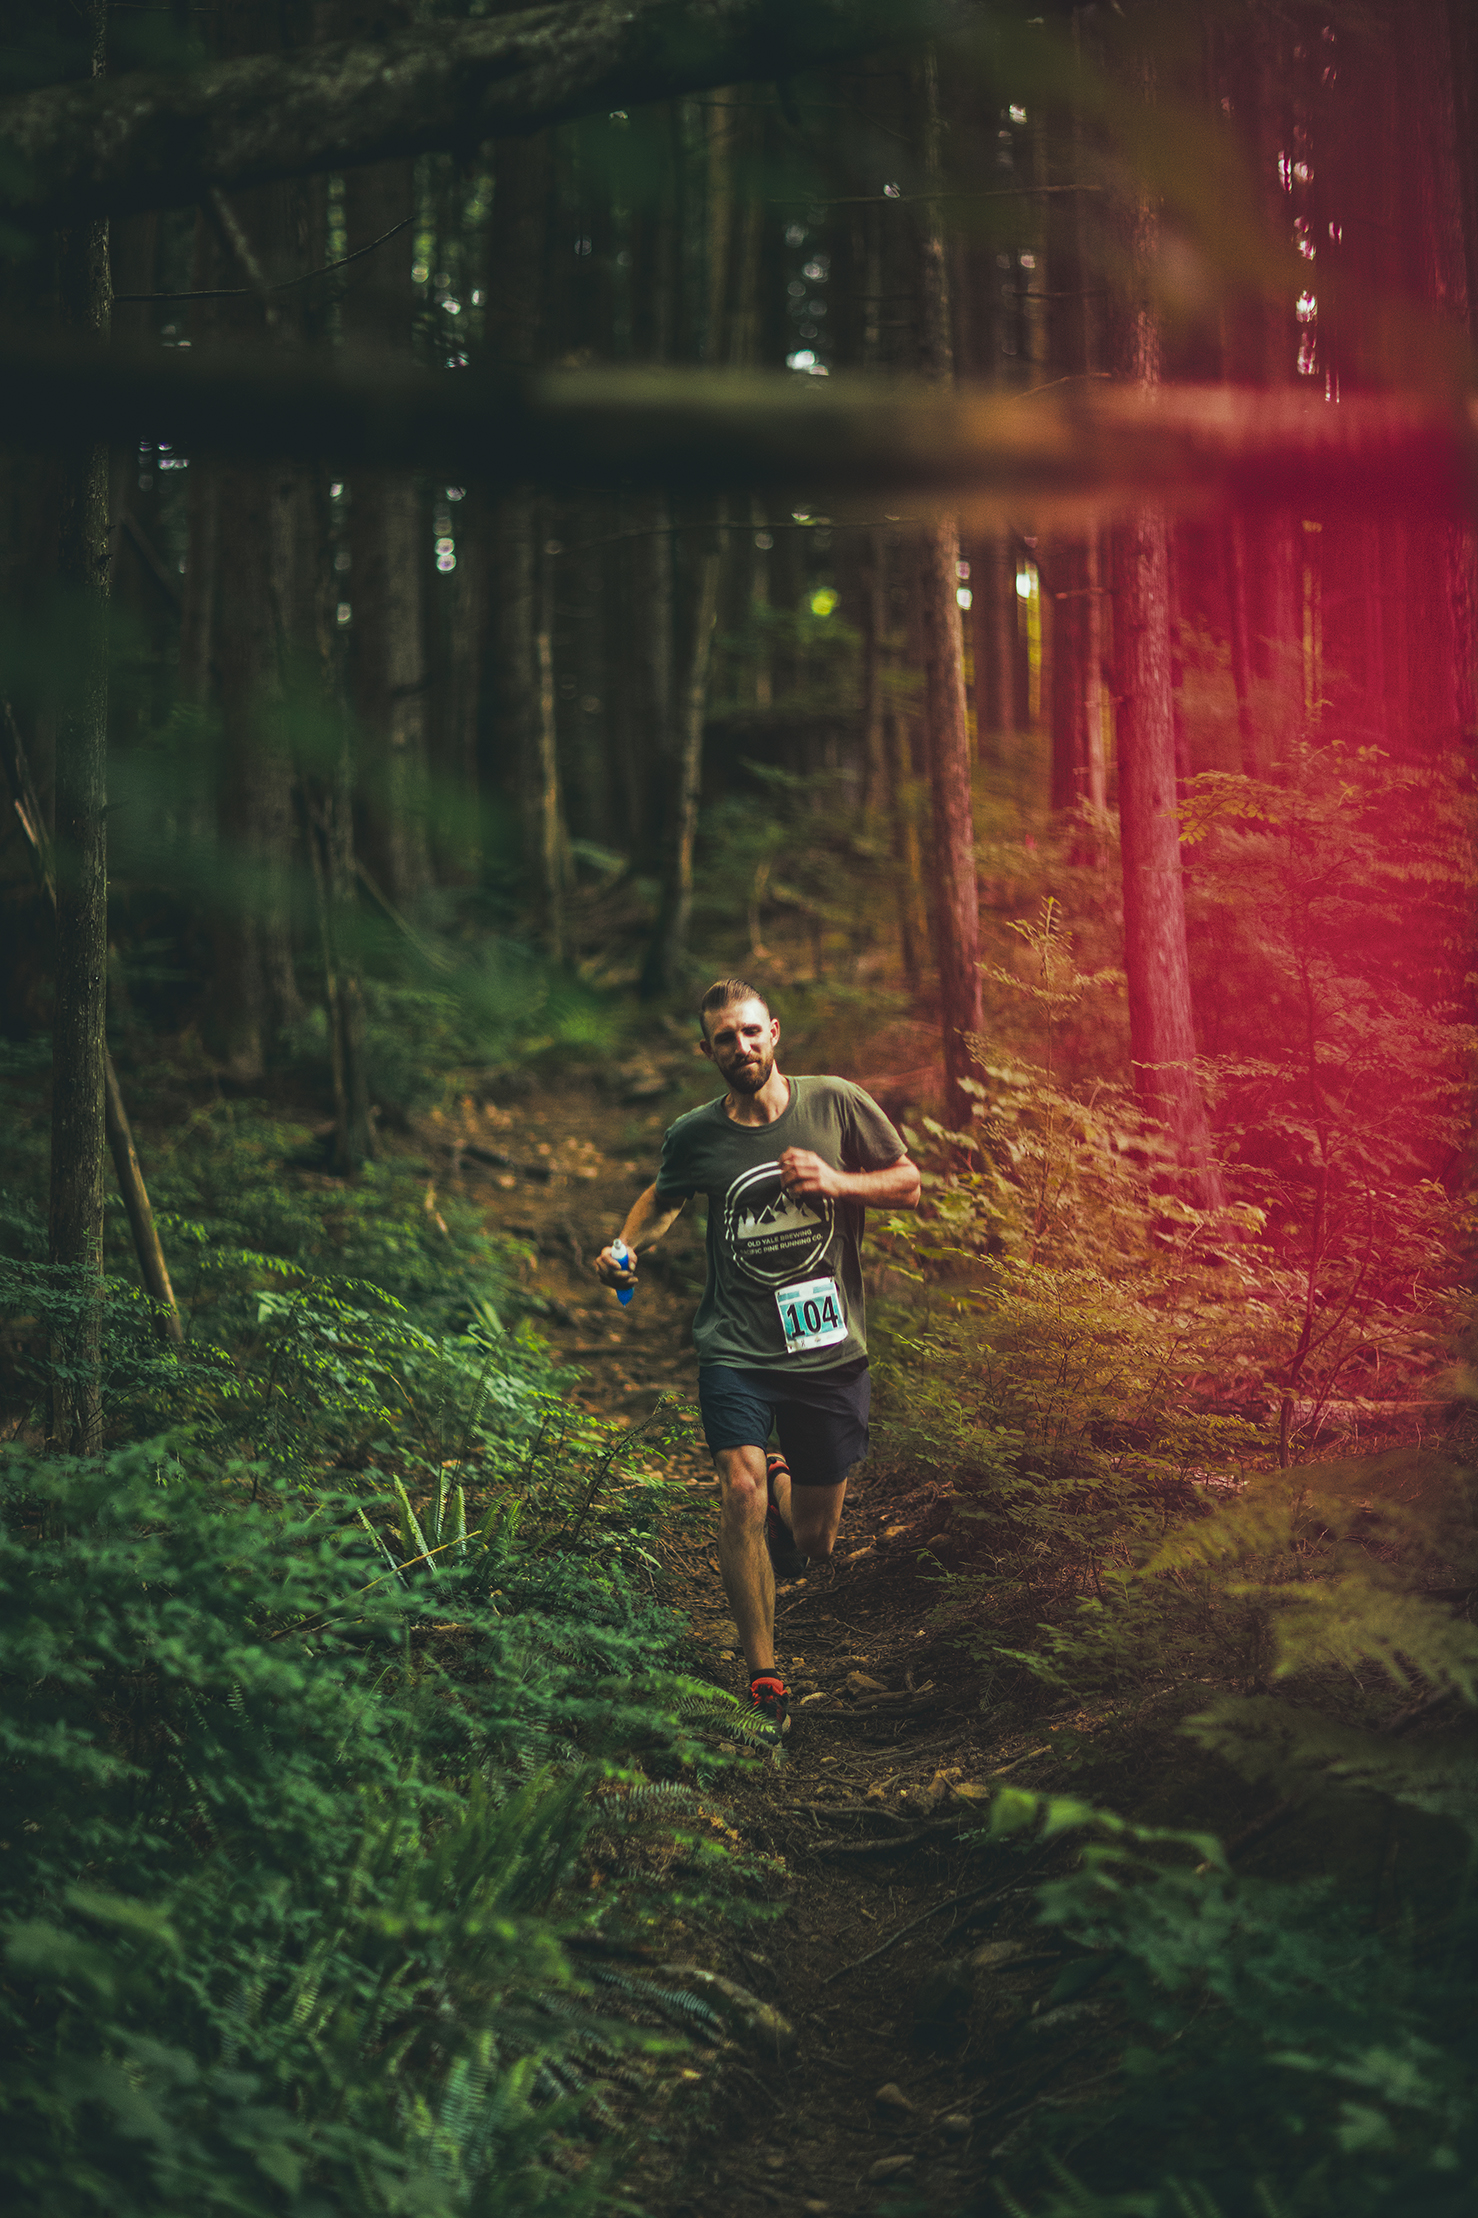 Fraser Valley Trail Races - Bear Mountain - IMG_1823 by Brice Ferre Studio - Vancouver Portrait Adventure and Athlete Photographer.jpg